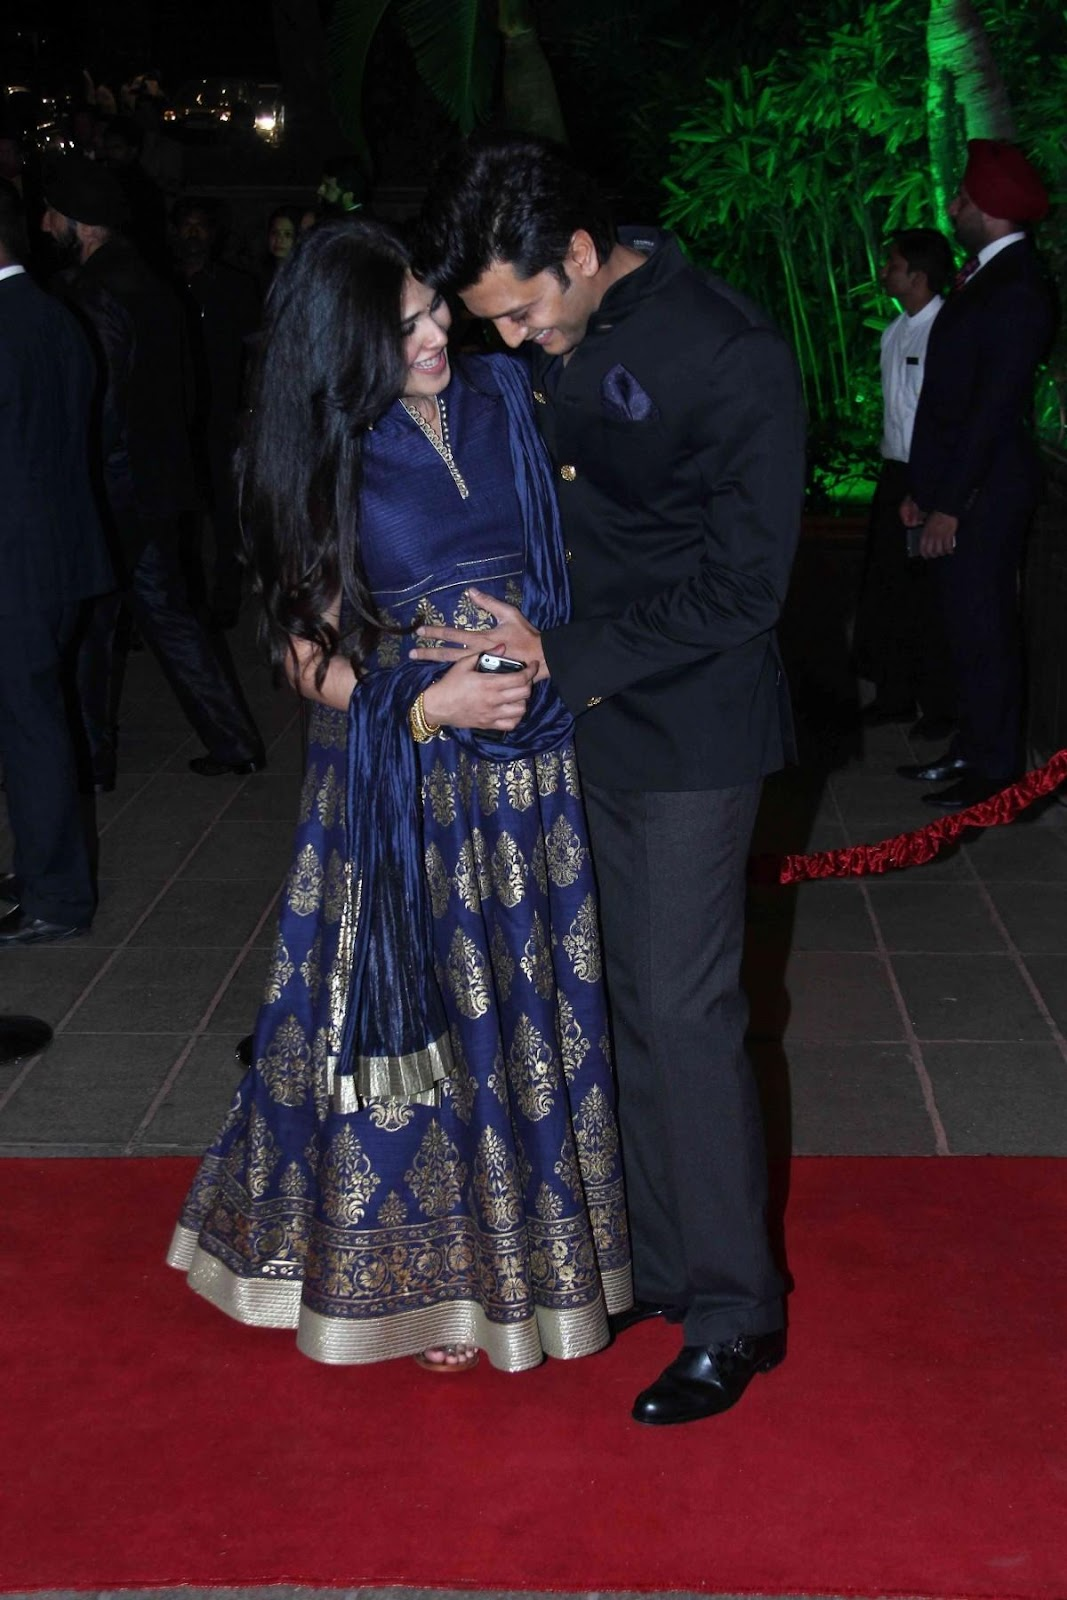 C:\Users\user\Desktop\Reacho\pics\1416812849_cute-pictures-riteish-deshmukh-mom-be-genelia-arpita-khans-wedding-reception-go-viral.jpg